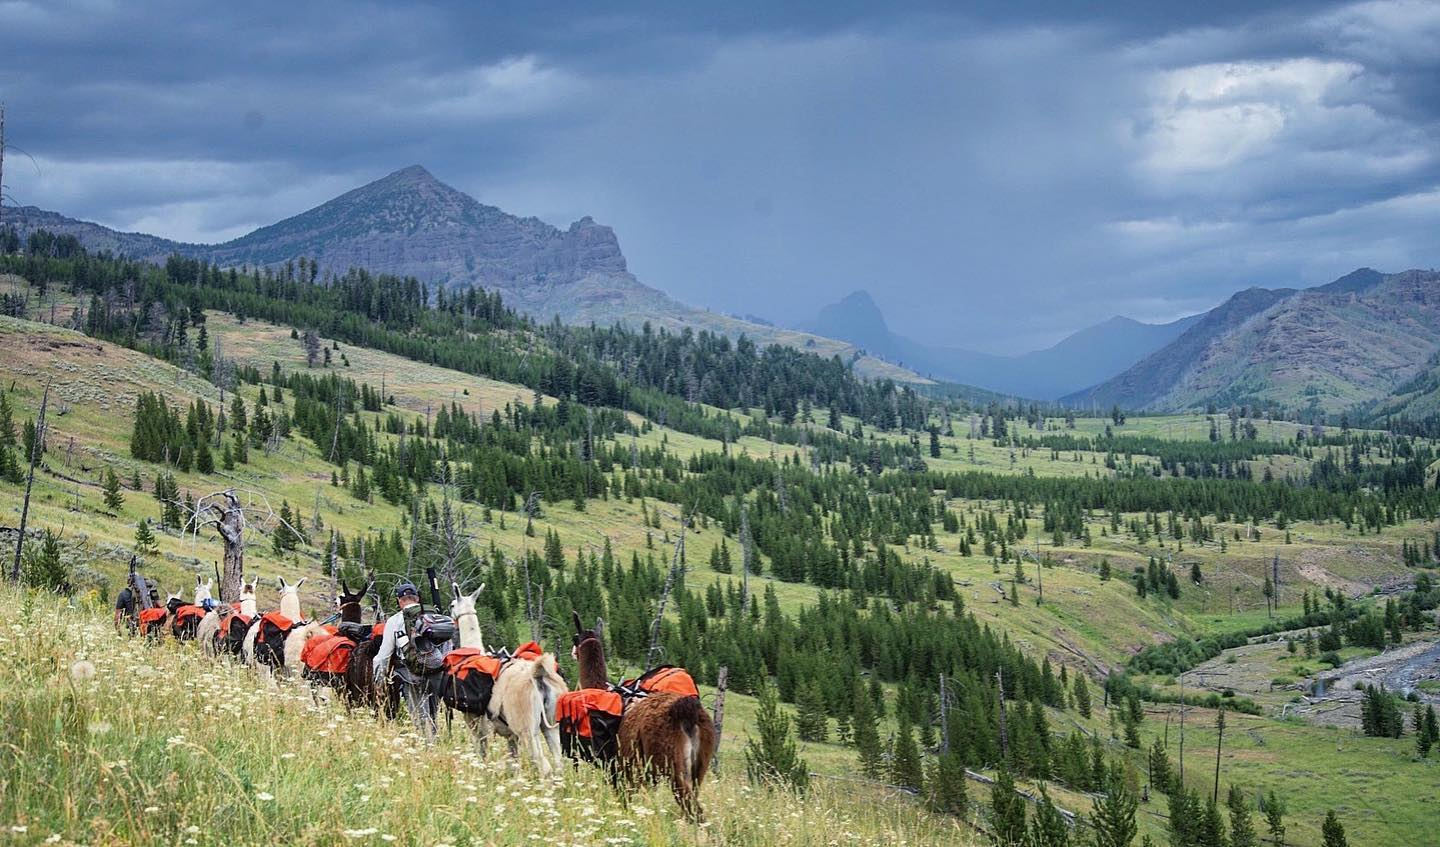 backcountry hunting group with pack llamas on grassy mountainside